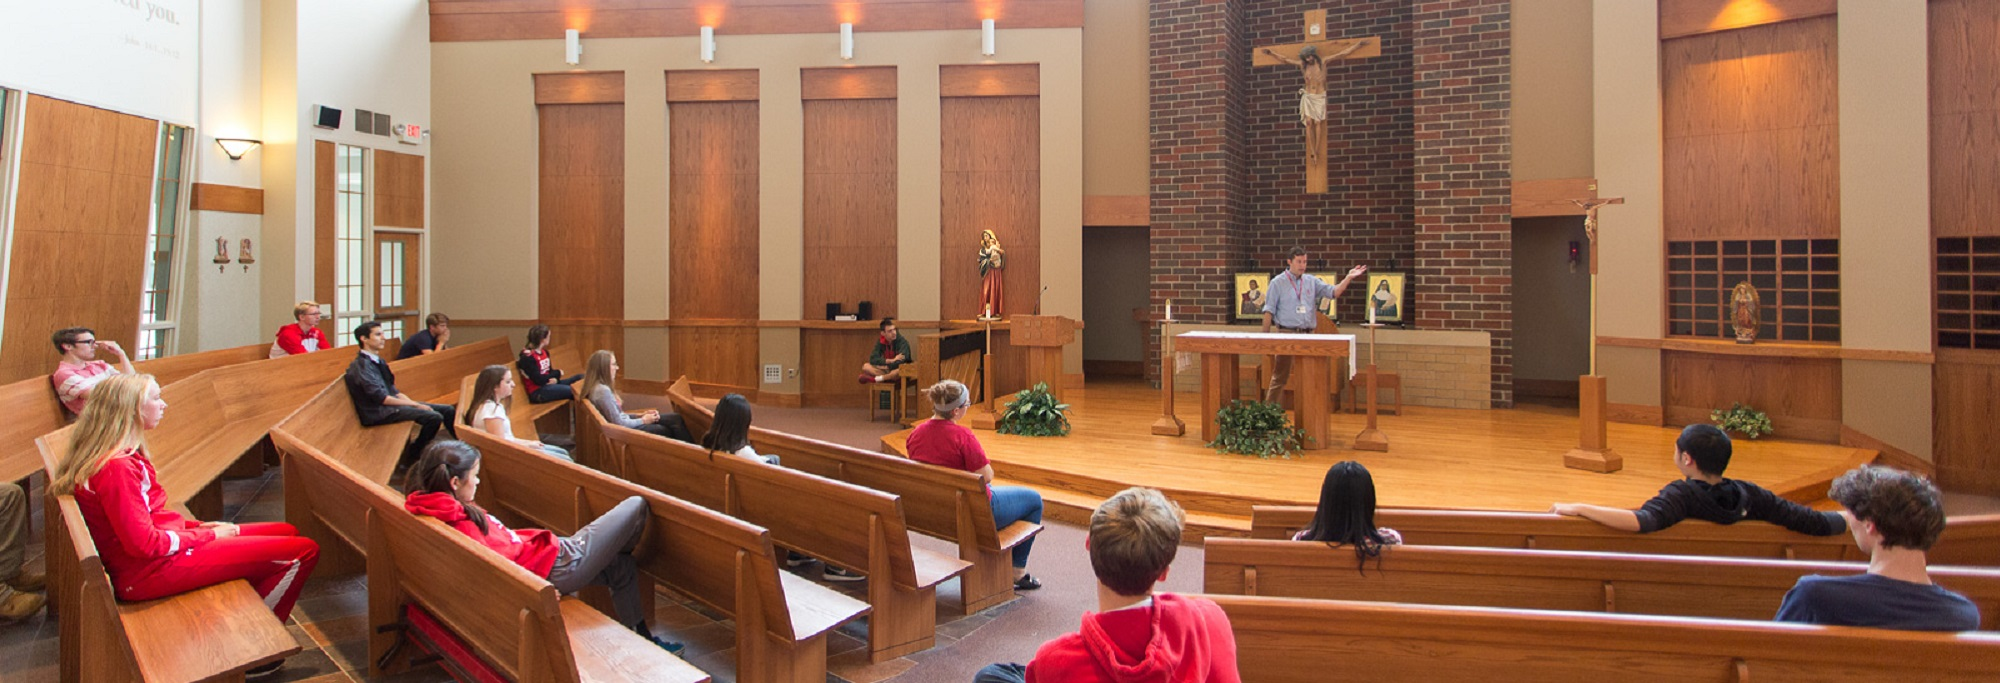 A theology class meets in the chapel to reflect on God's love